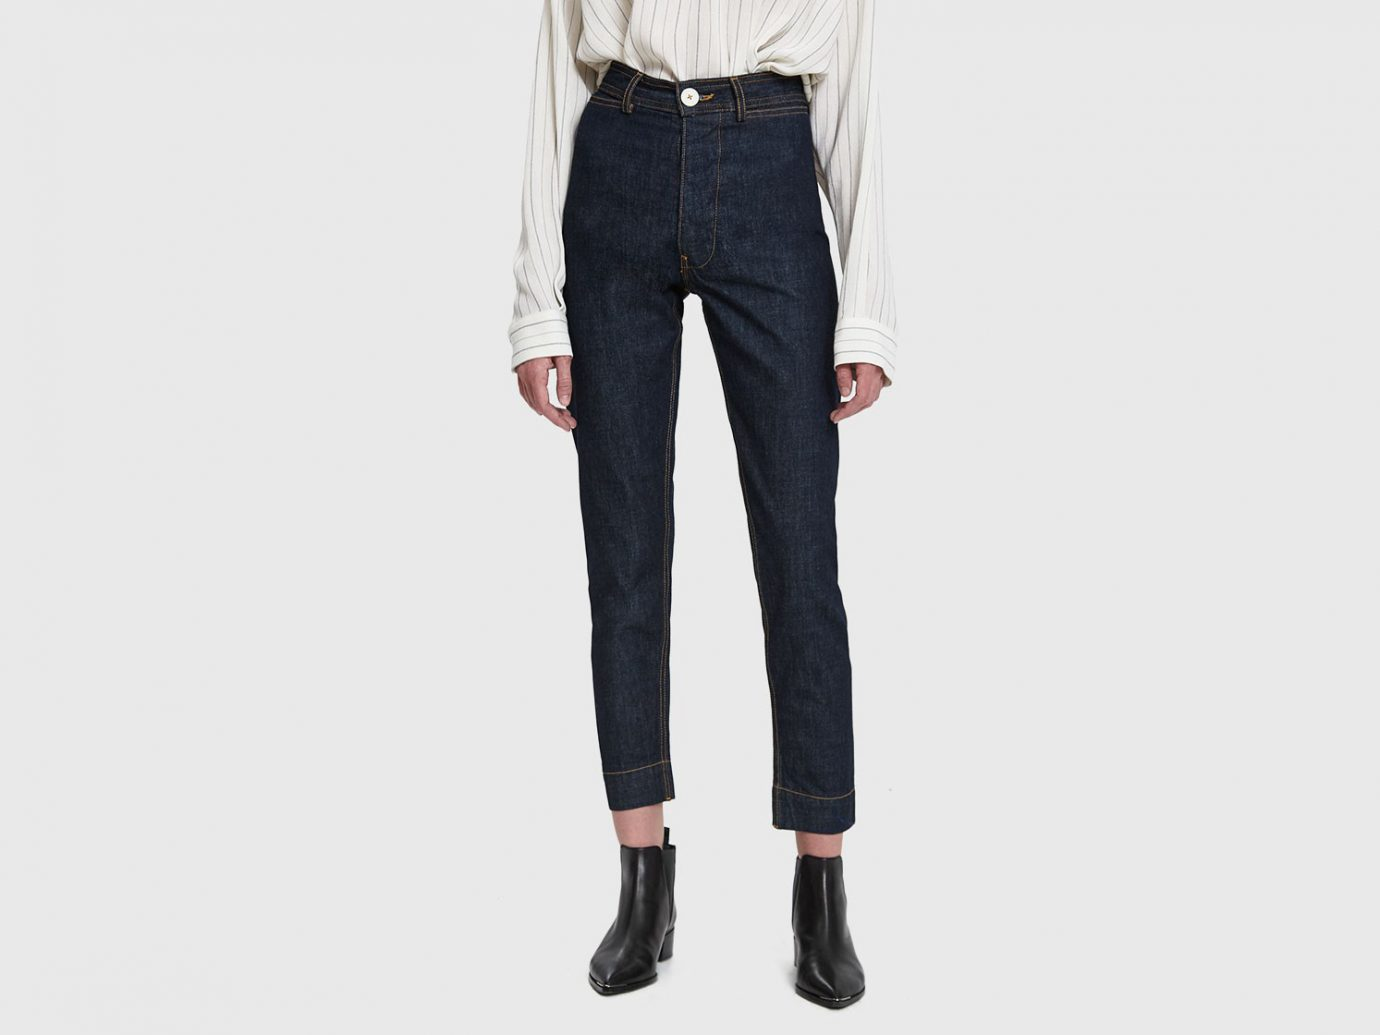 Jesse Kamm Denim Ranger Pant in Dark Blue